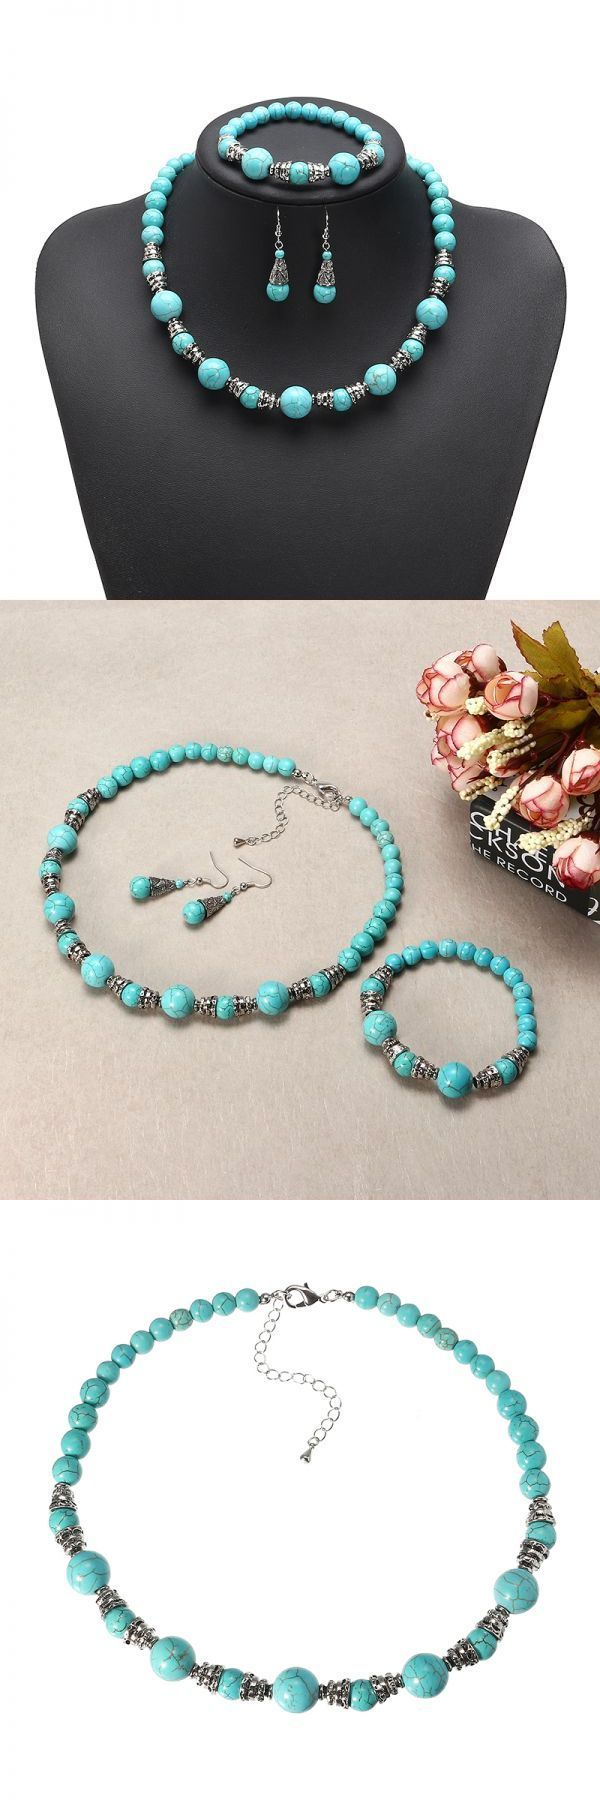 Jewelry set 2015 jassy® platinum plated turquoise beads retro ethnic fine jewelry set best gifts for women #bridal #jewelry #set #2015 #jewelry #set #for #baby #girl #knot #jewelry #set #korean #jewelry #set #wholesale